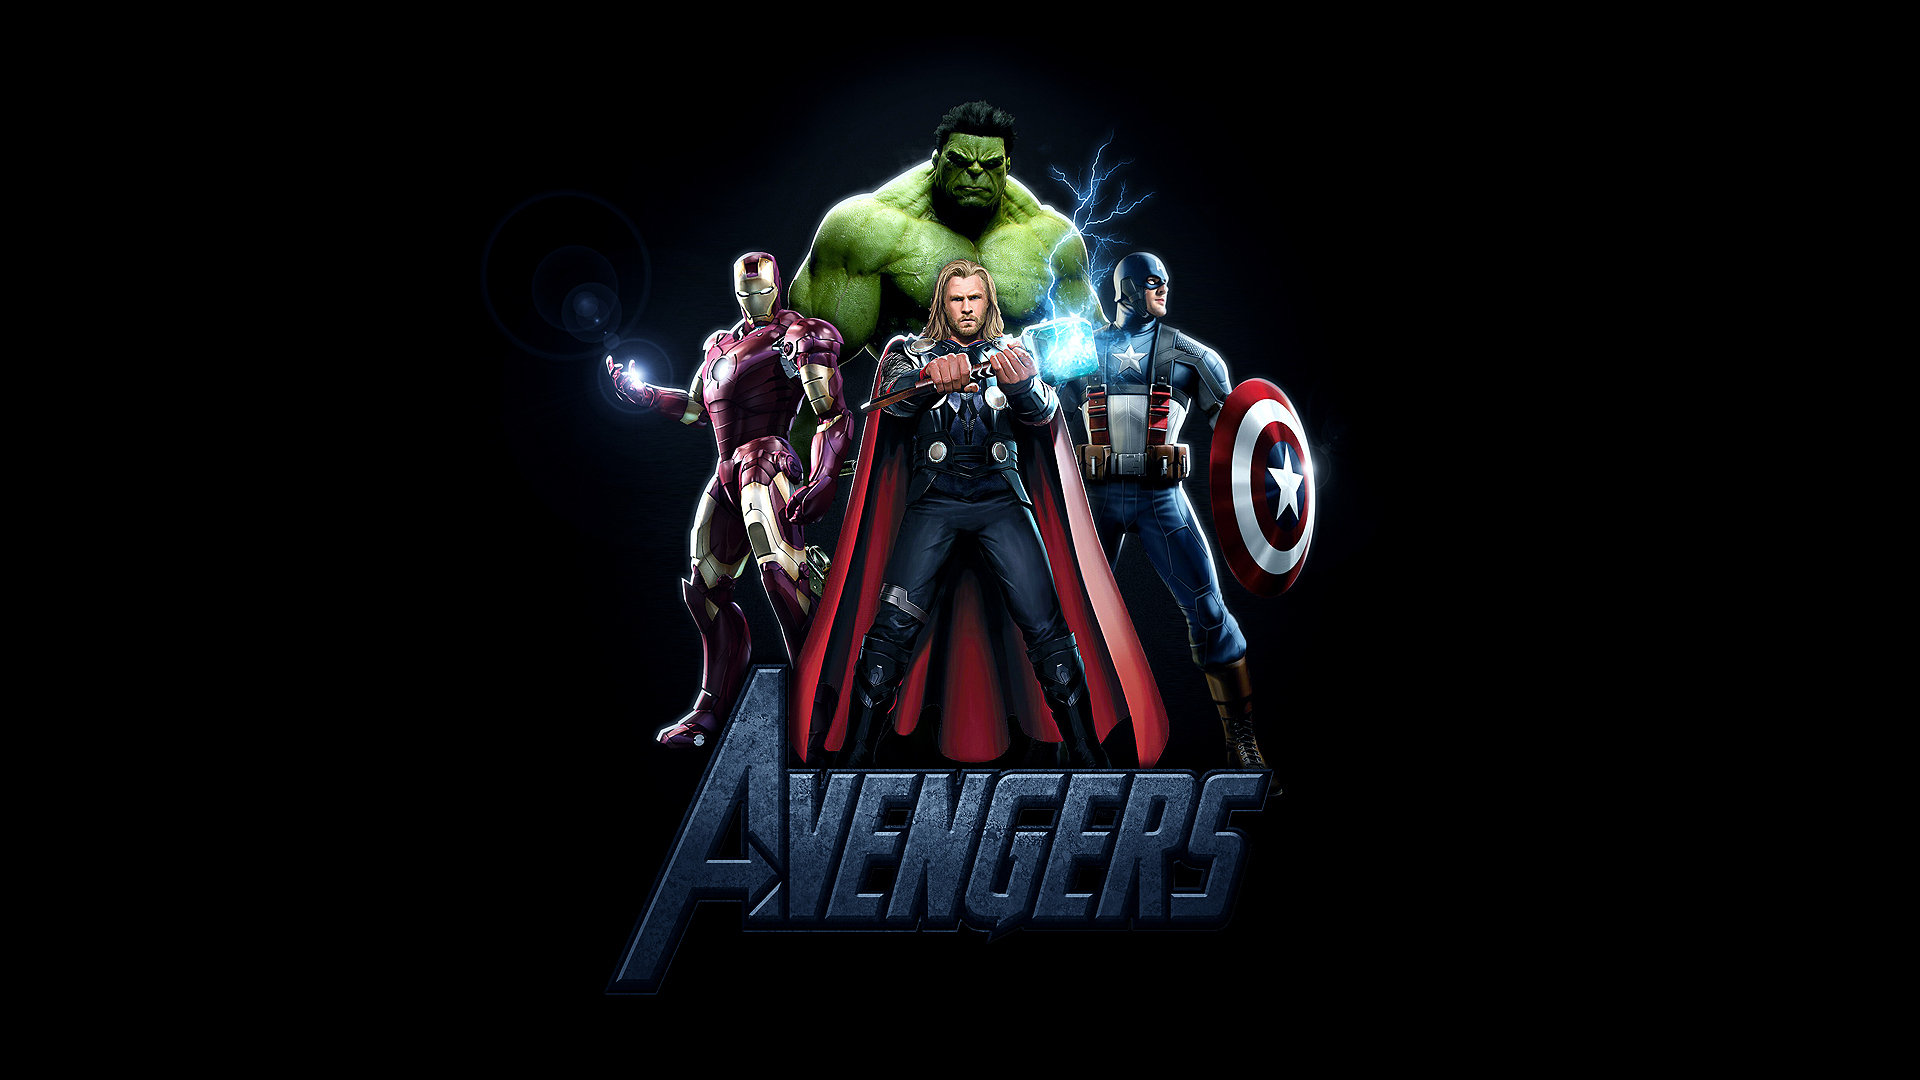 The Avengers Images The Avengers Assemble Hd Wallpaper And